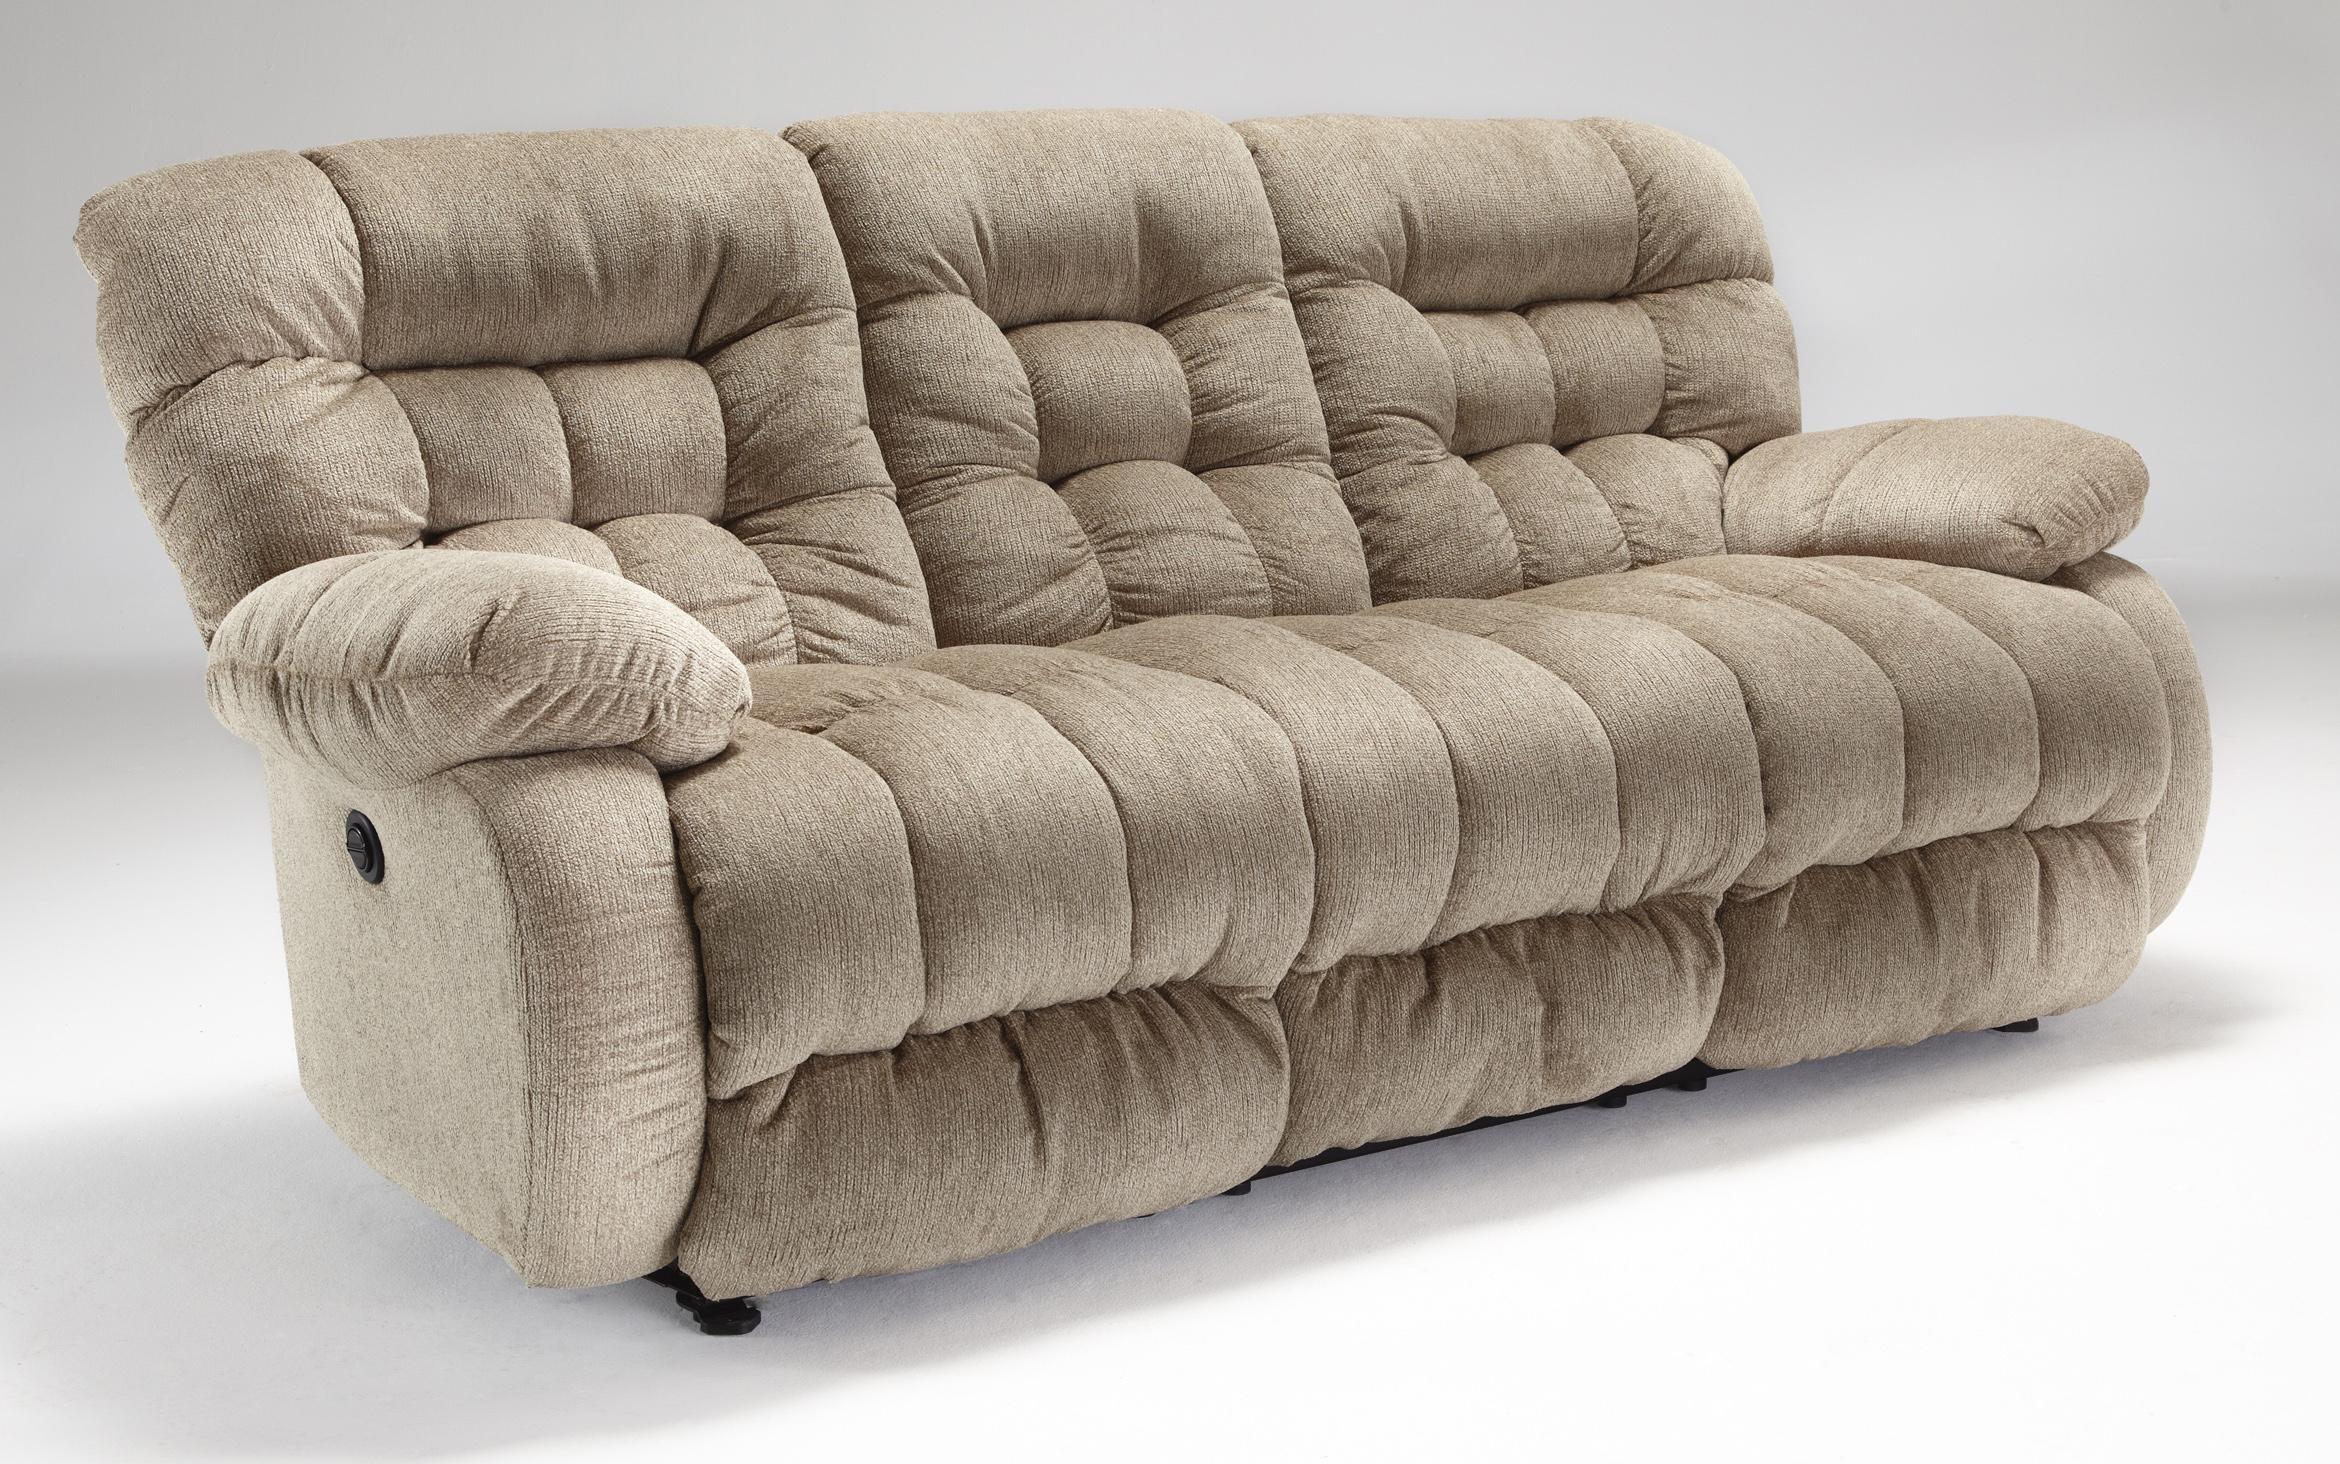 reclining sofa manufacturers usa catnapper buckingham dual leather recliner best home furnishings plusher space saver